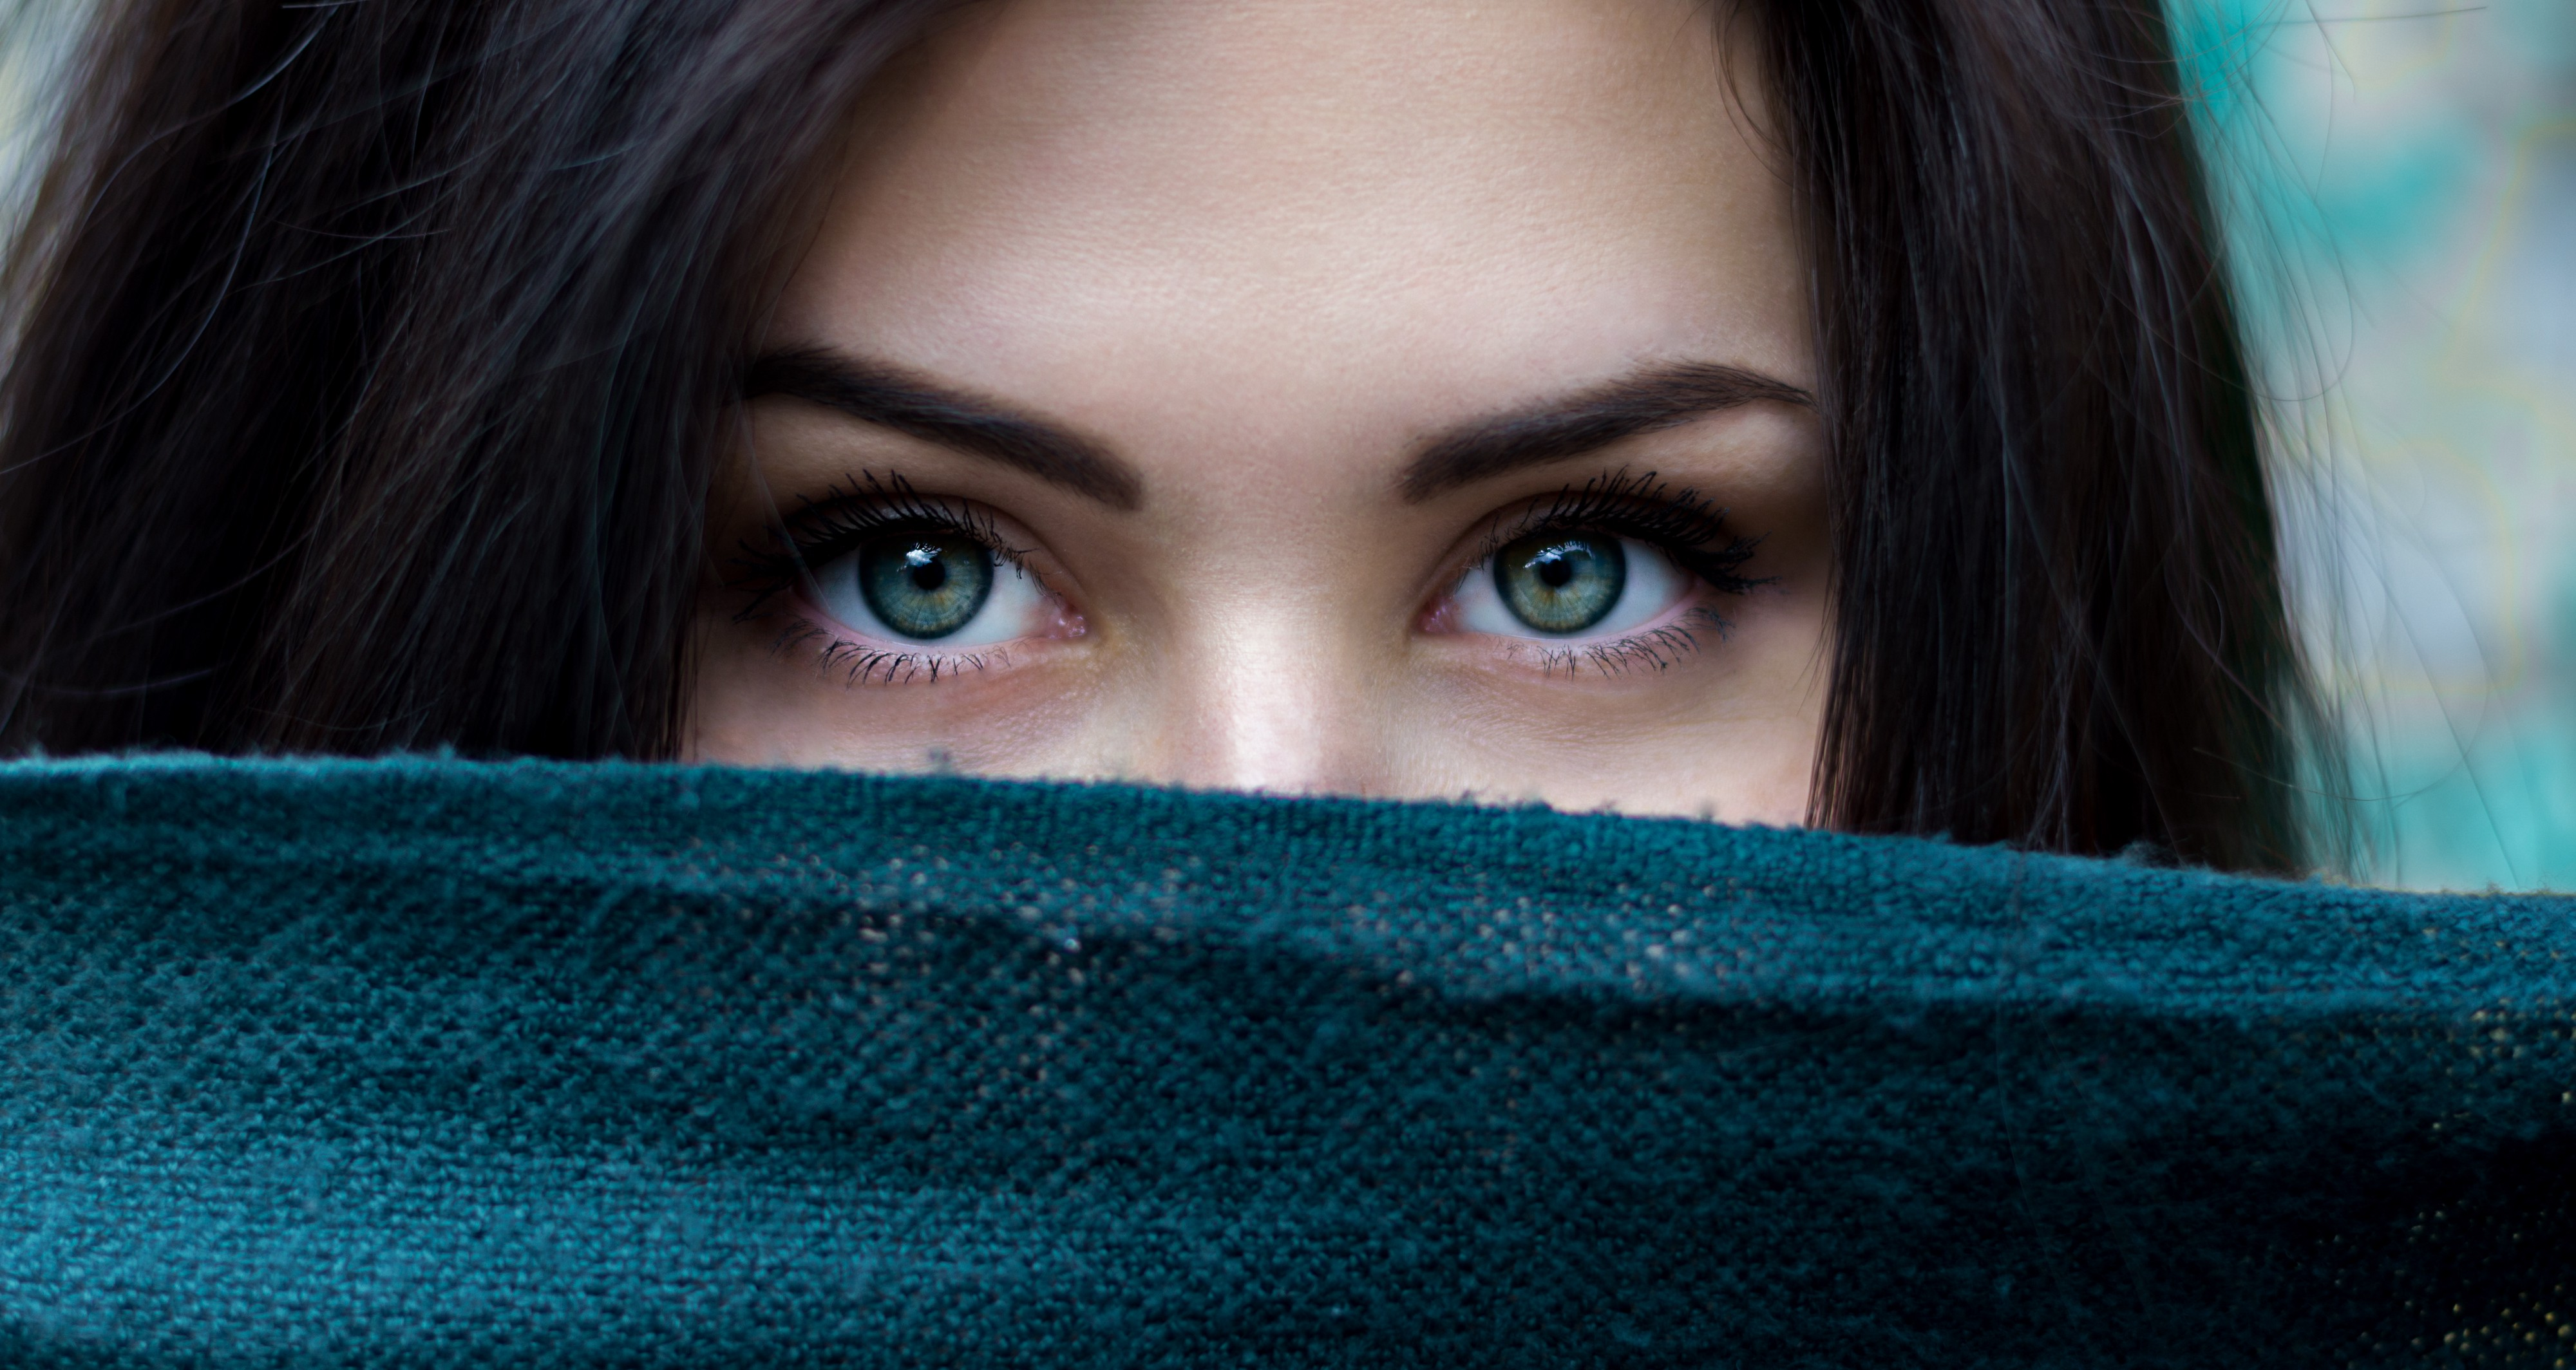 A young woman with green eyes, hiding behind a blue blanket, so you are unable to see her entire face.